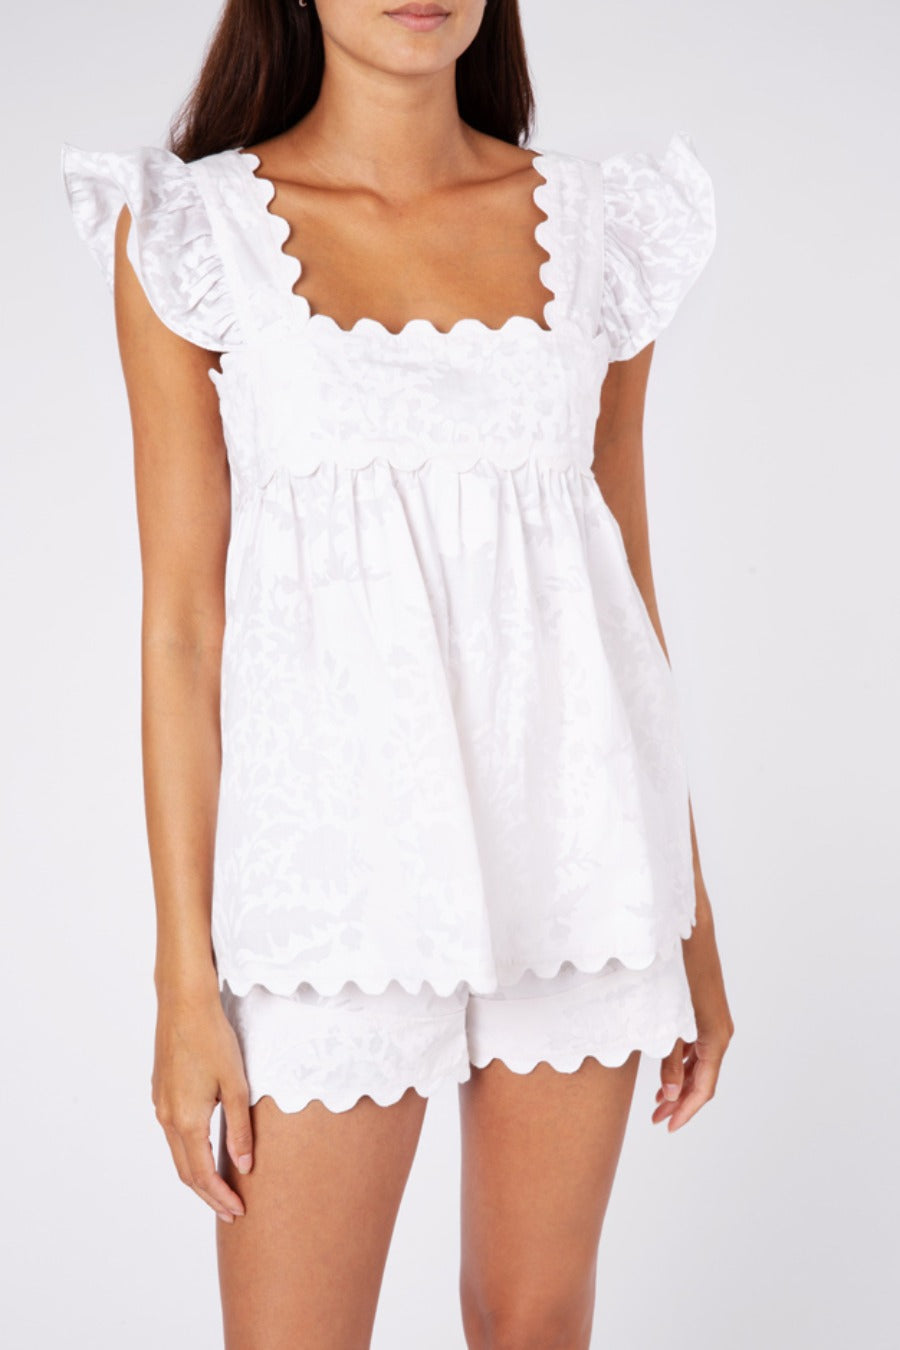 Baby Doll Top in Palladio Block Print- White